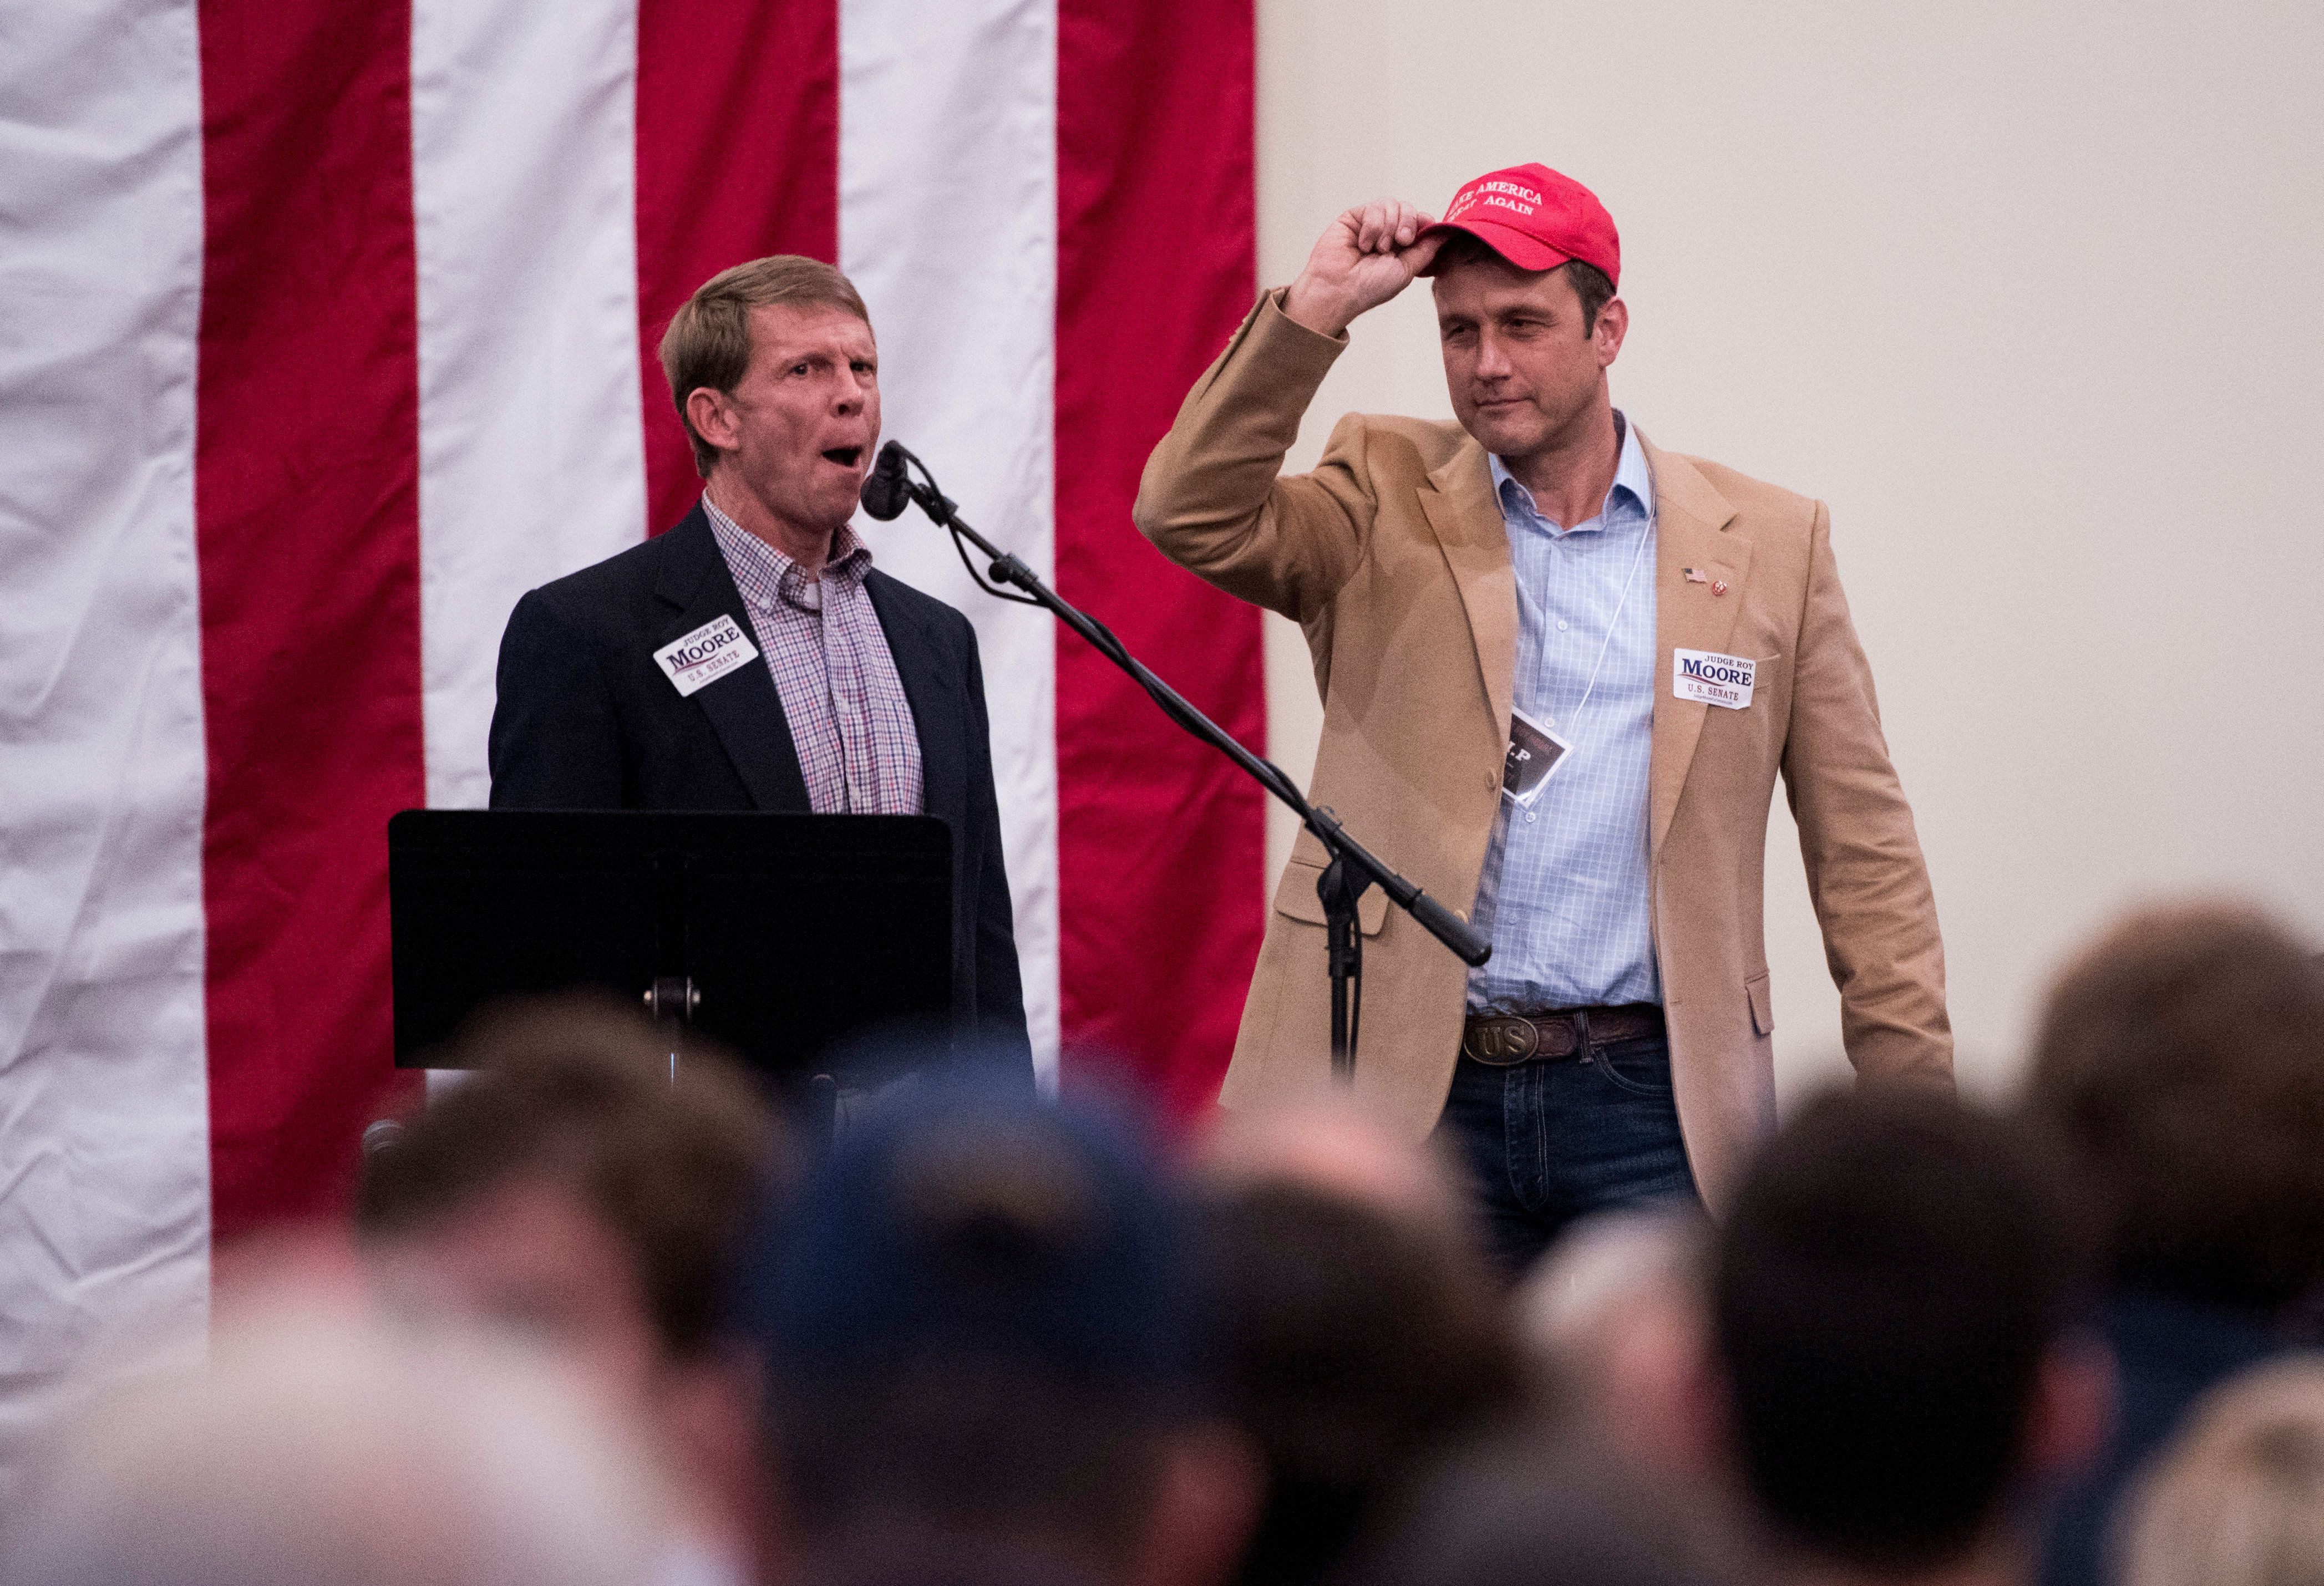 White Nationalist Paul Nehlen Loses GOP Primary For Congress In Wisconsin